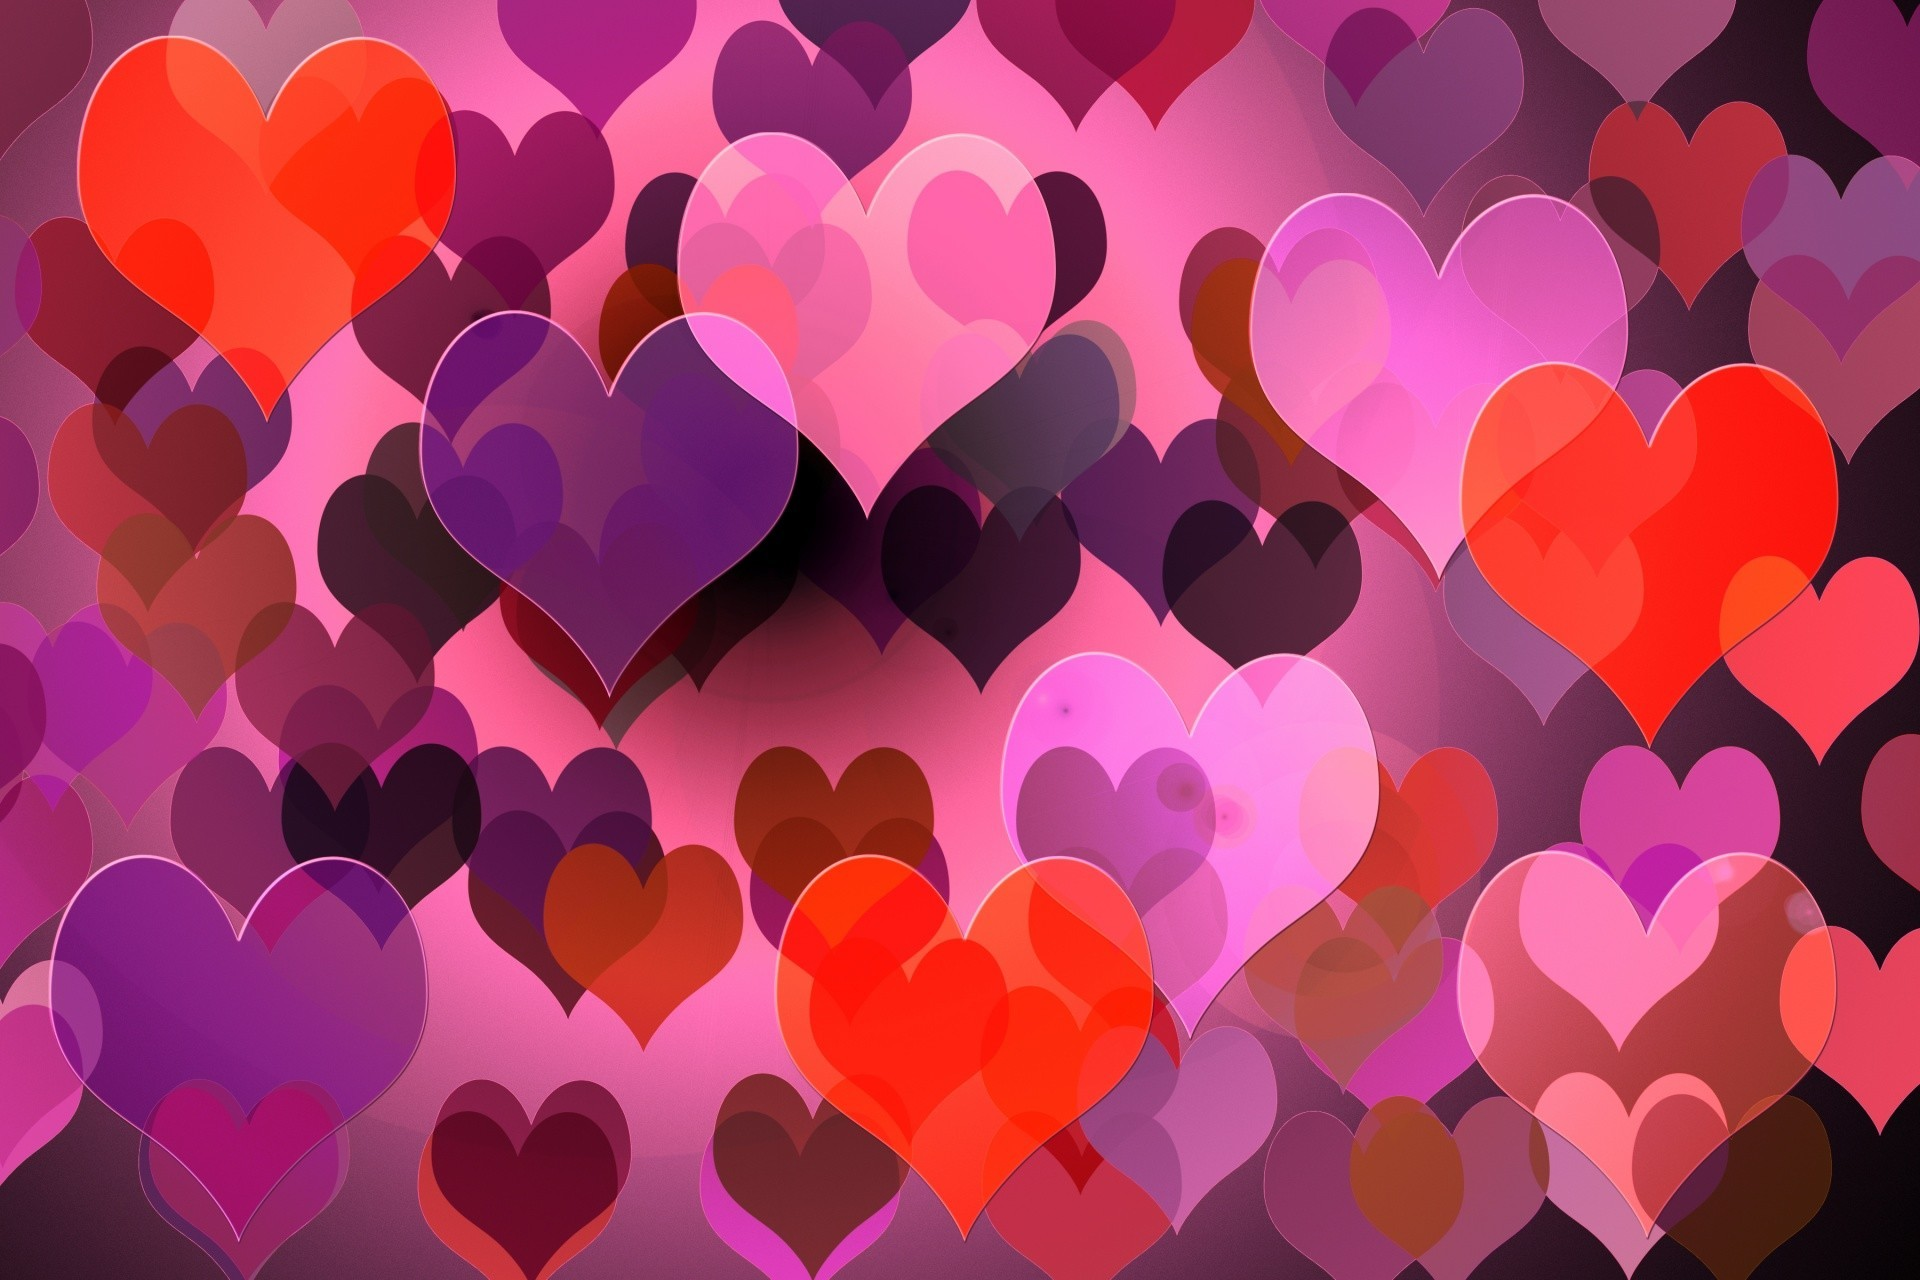 pink heart backgrounds 183��